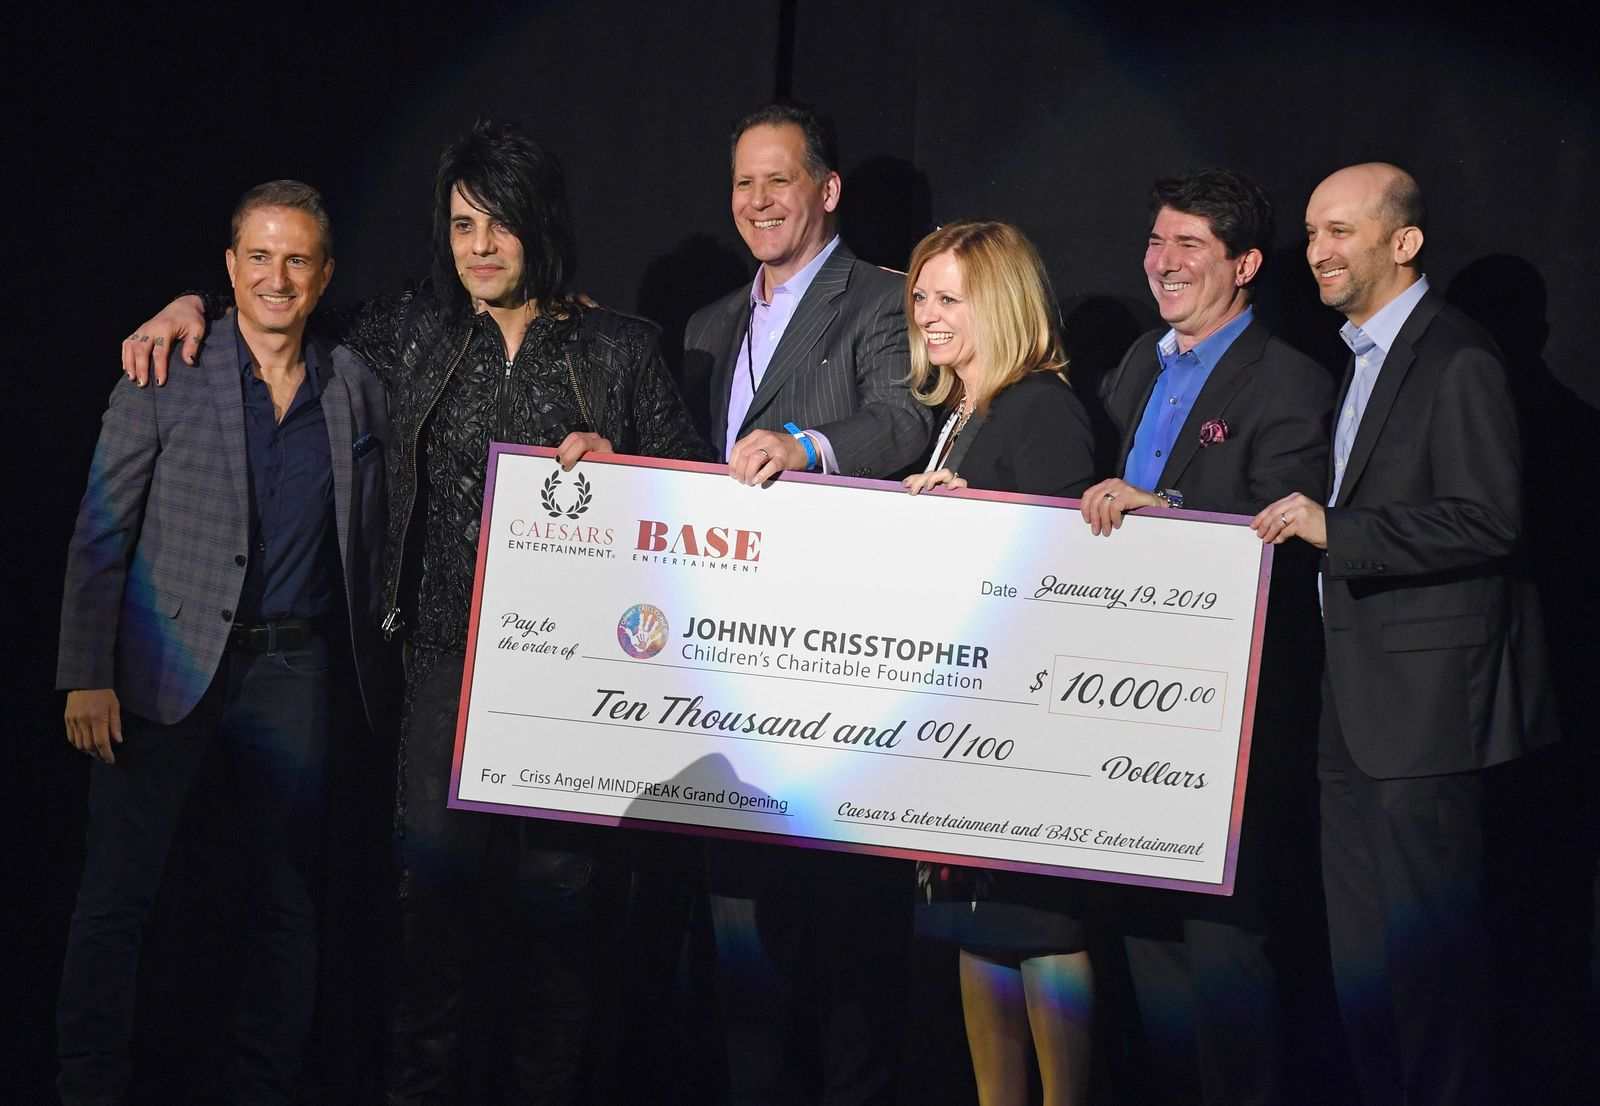 "LAS VEGAS, NEVADA - JANUARY 19:  (L-R) LBI Entertainment Co-Founder Dave Baram, illusionist Criss Angel, BASE Entertainment Chief Operating Officer Mark Maluso, Planet Hollywood Resort & Casino General Manager Sherri Pucci Sosa, BASE Entertainment CEO Brian Becker and Caesars Entertainment Senior Vice President of Entertainment Jason Gastwirth pose onstage after Caesars Entertainment and BASE Entertainment presented Angel with a USD 10,000 check for his Johnny Crisstopher Children's Charitable Foundation  the grand opening of ""Criss Angel MINDFREAK"" at Planet Hollywood Resort & Casino on January 19, 2019 in Las Vegas, Nevada.  (Photo by Ethan Miller/Getty Images for Planet Hollywood Resort & Casino)"